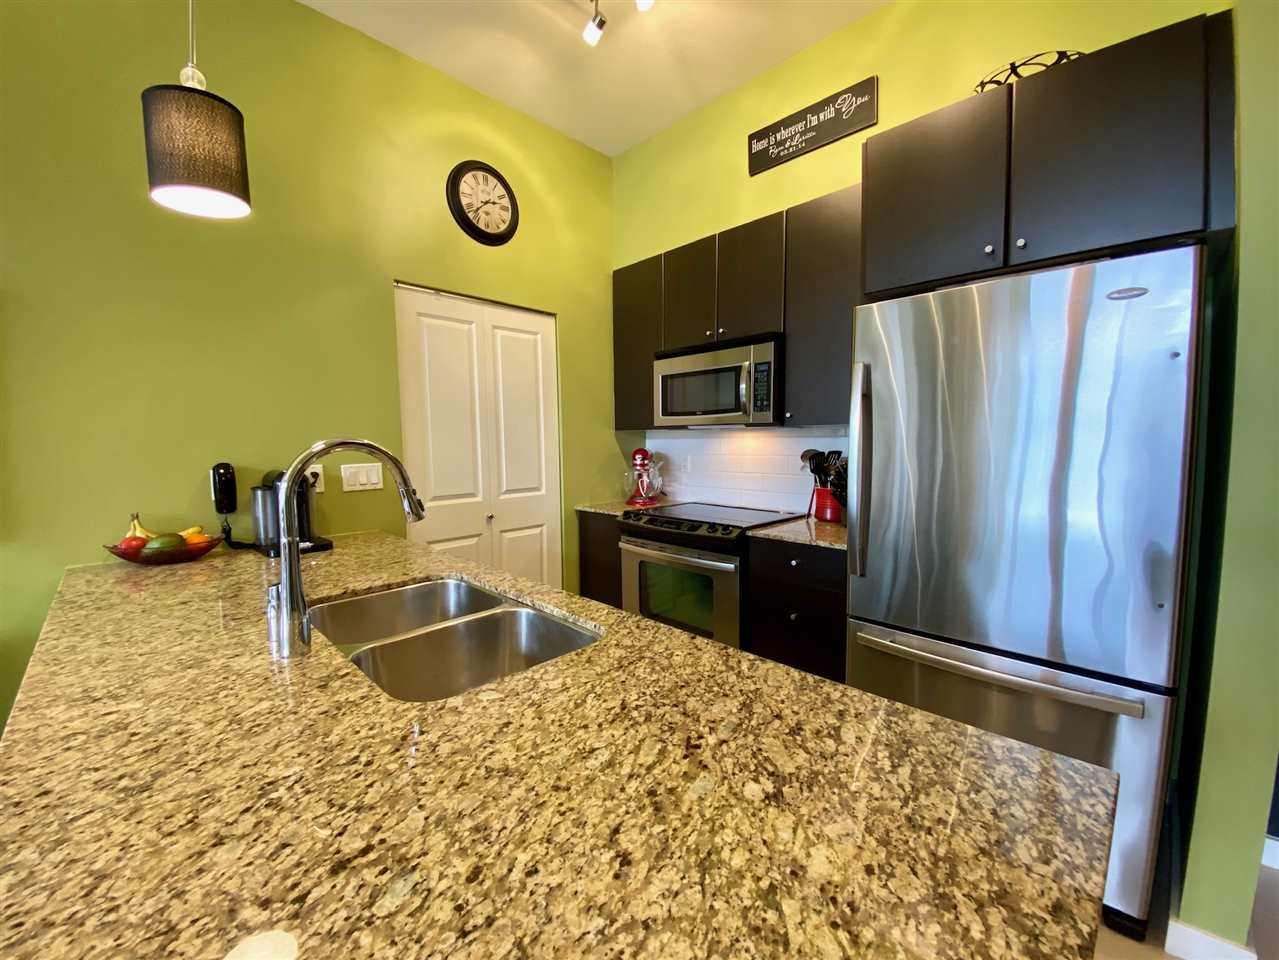 412 225 FRANCIS WAY - Fraserview NW Apartment/Condo for sale, 2 Bedrooms (R2469527) - #3